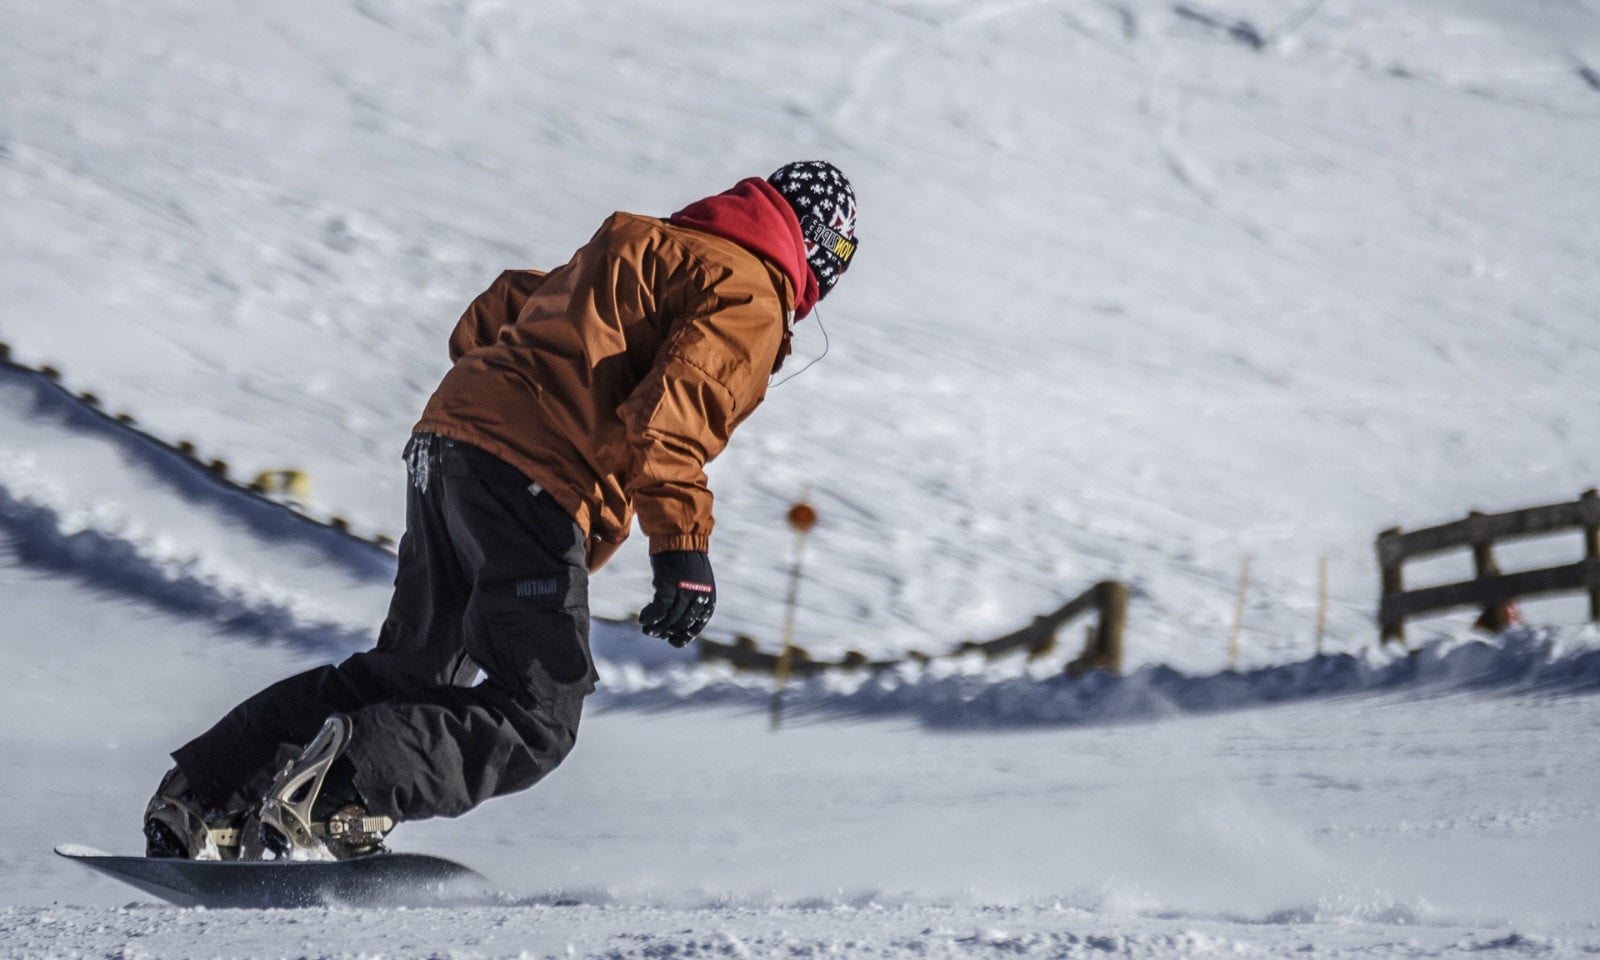 How to Choose a Snowboard - Online Buyer's Guide